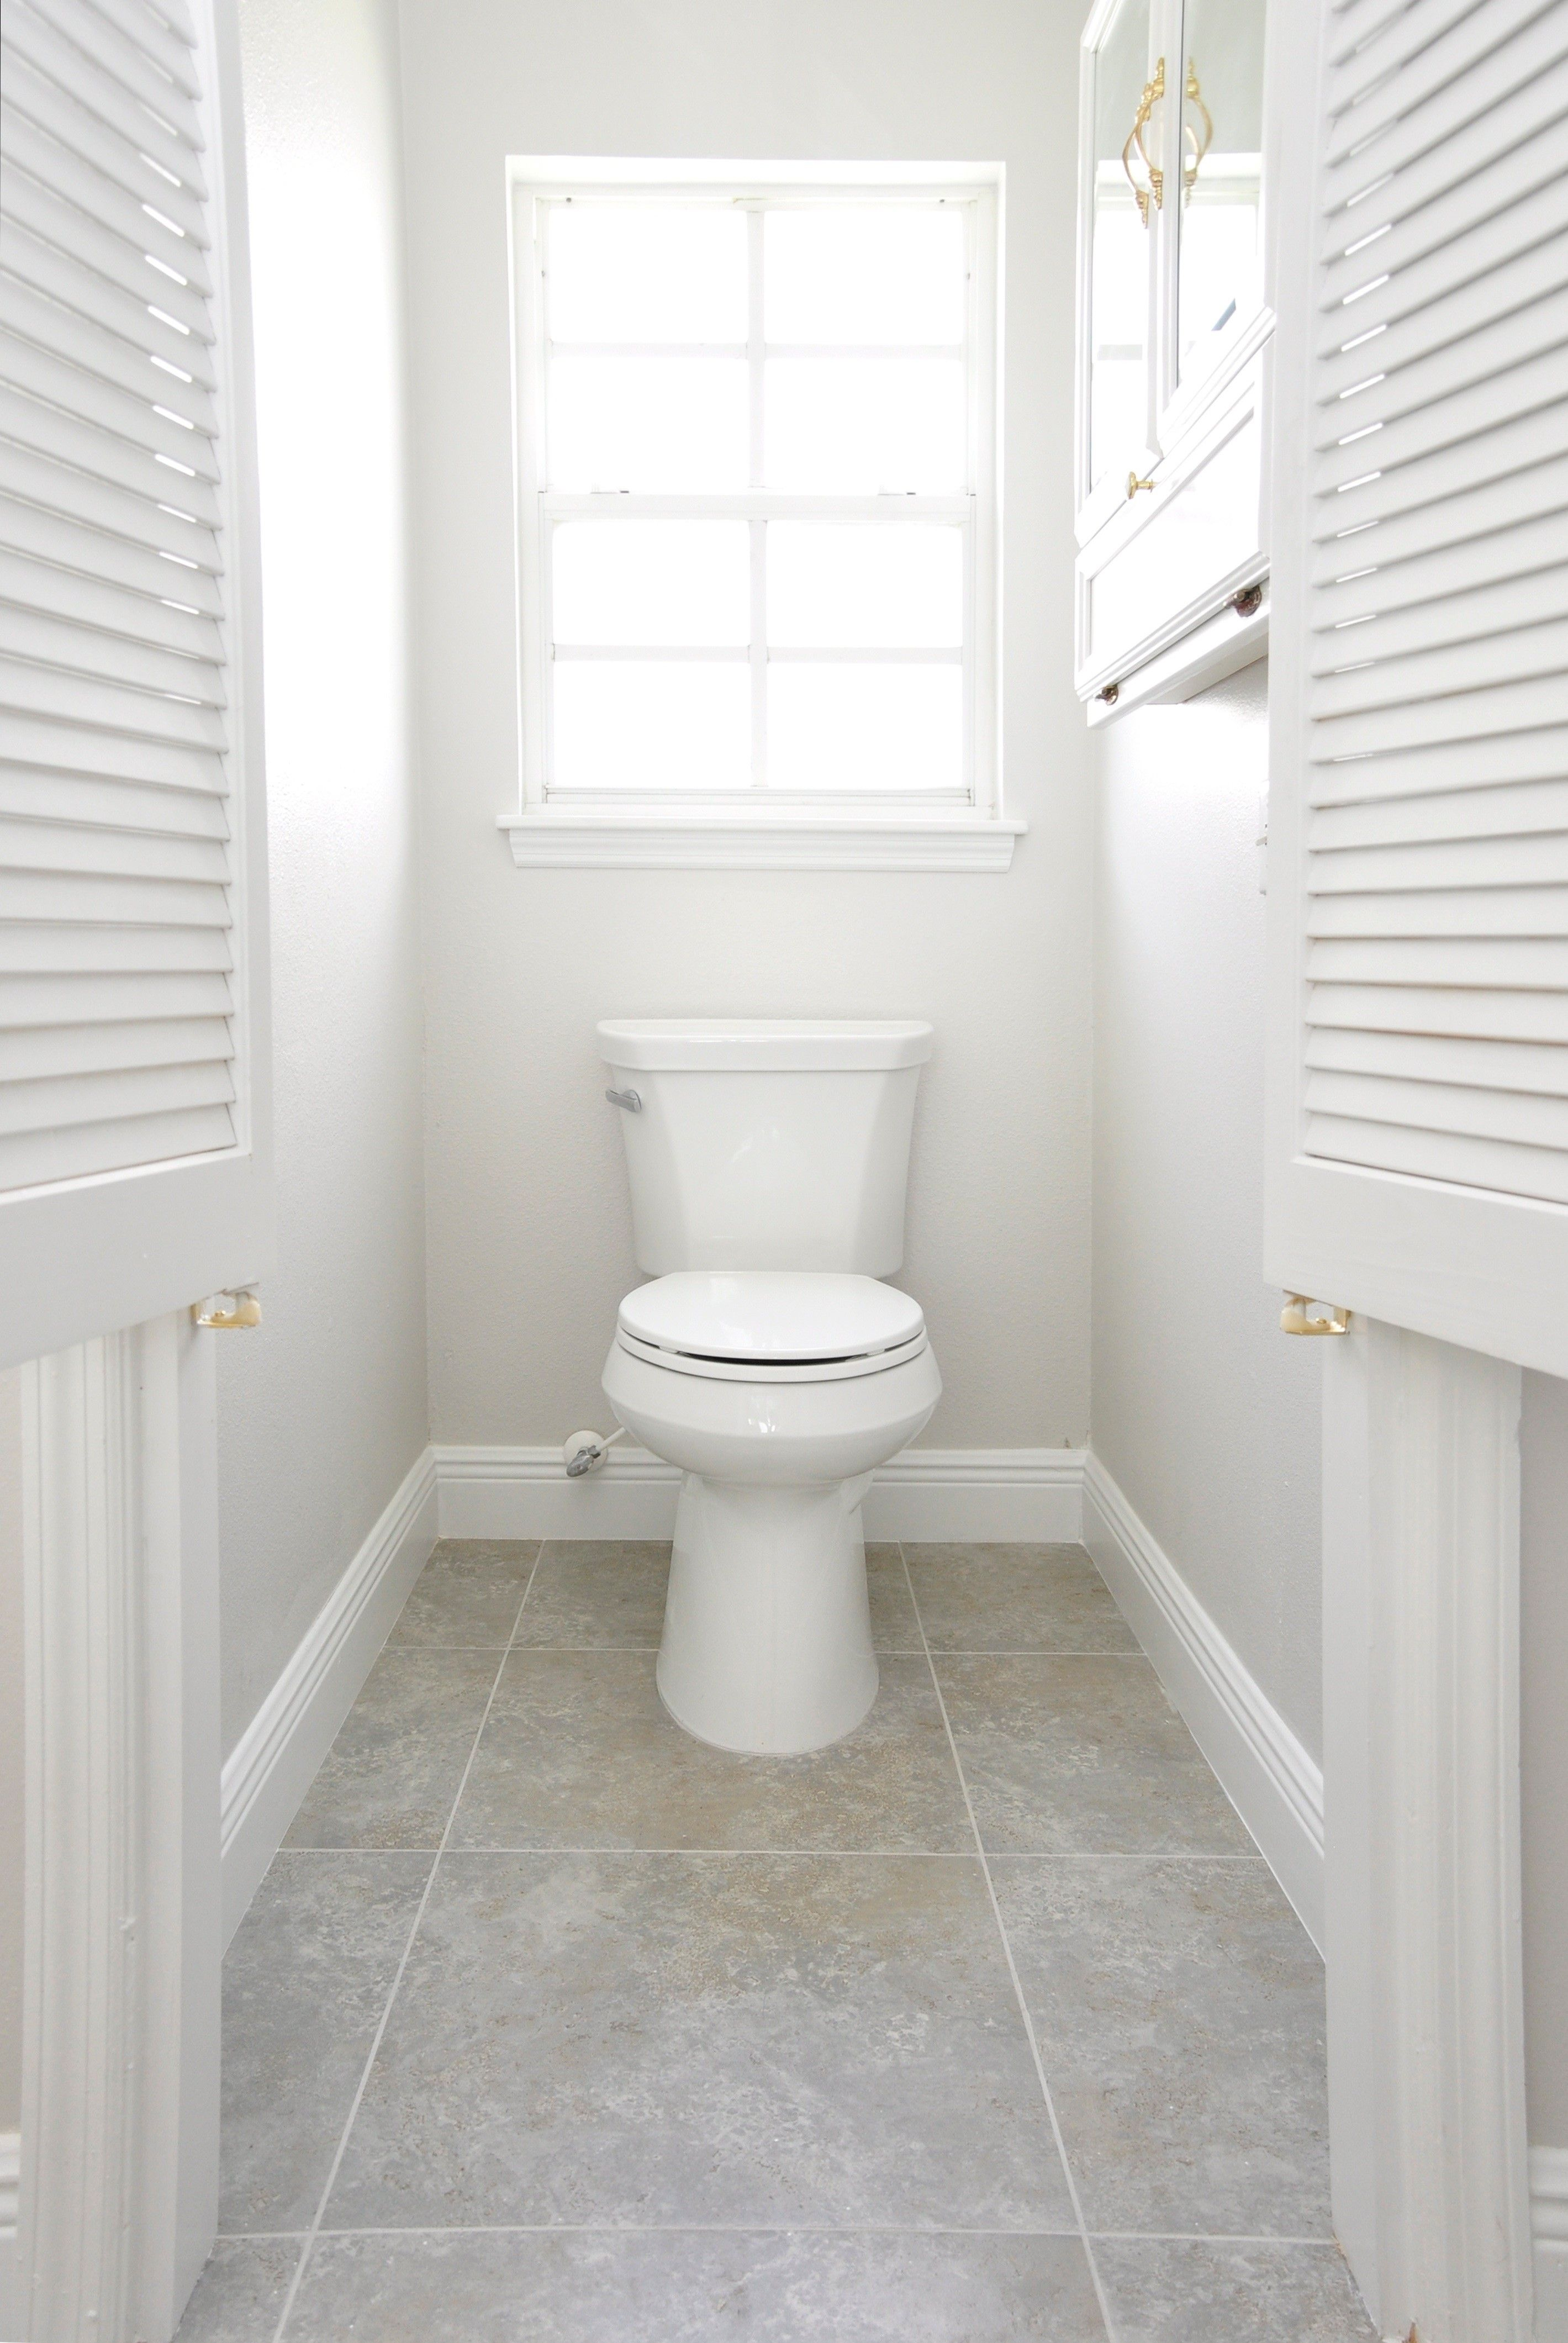 White Neutral Toilet Bathroom With Window Medicine Cabinet And